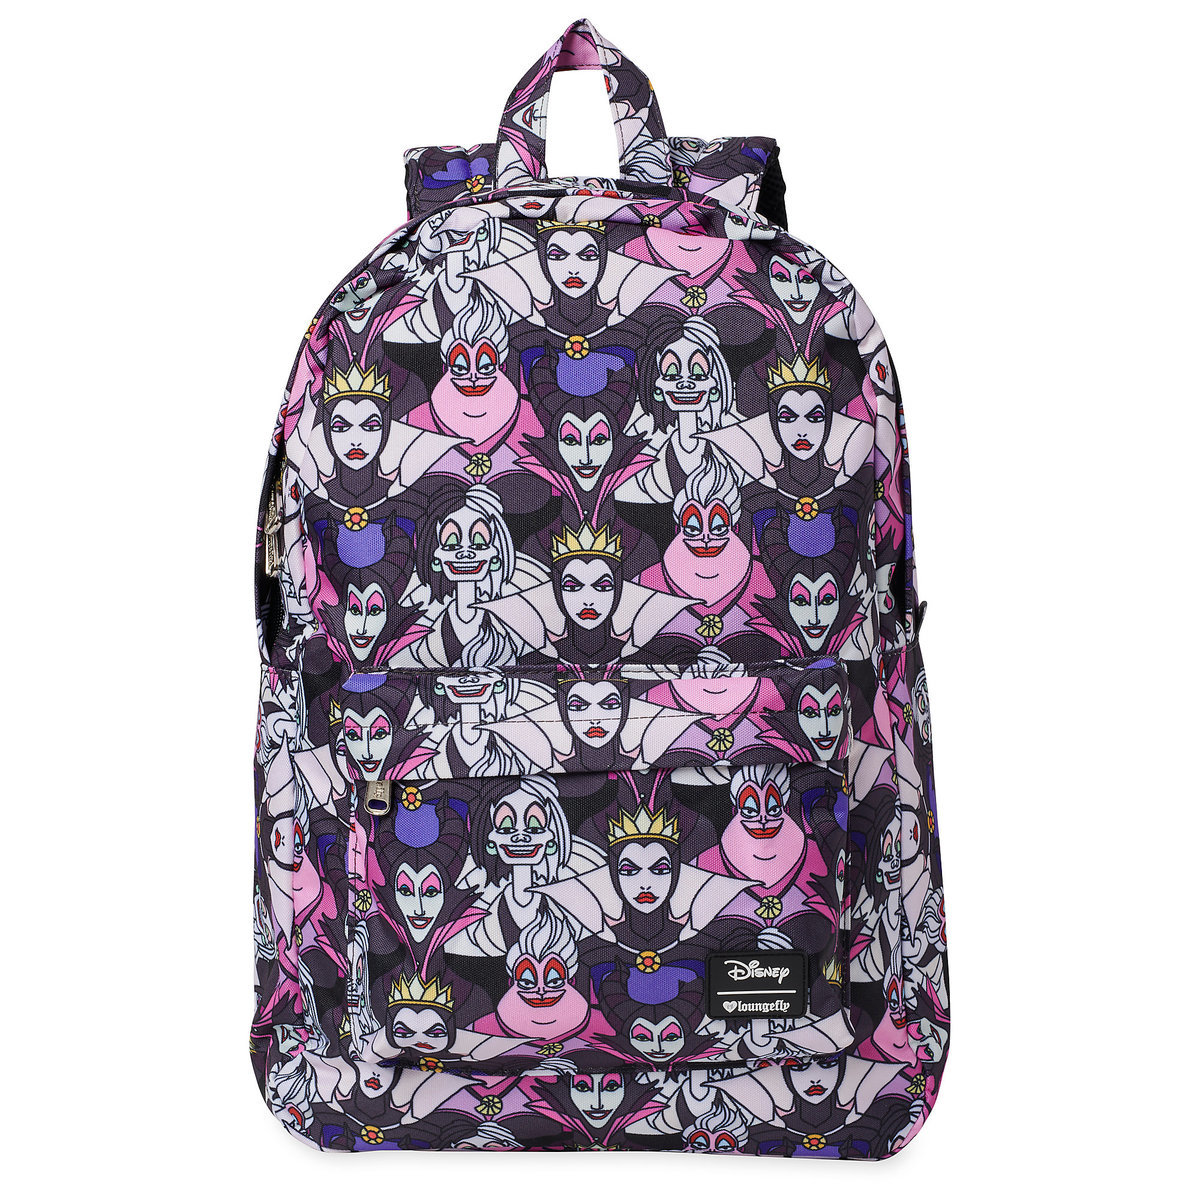 d7891646698 Product Image of Disney Villains Backpack by Loungefly   1